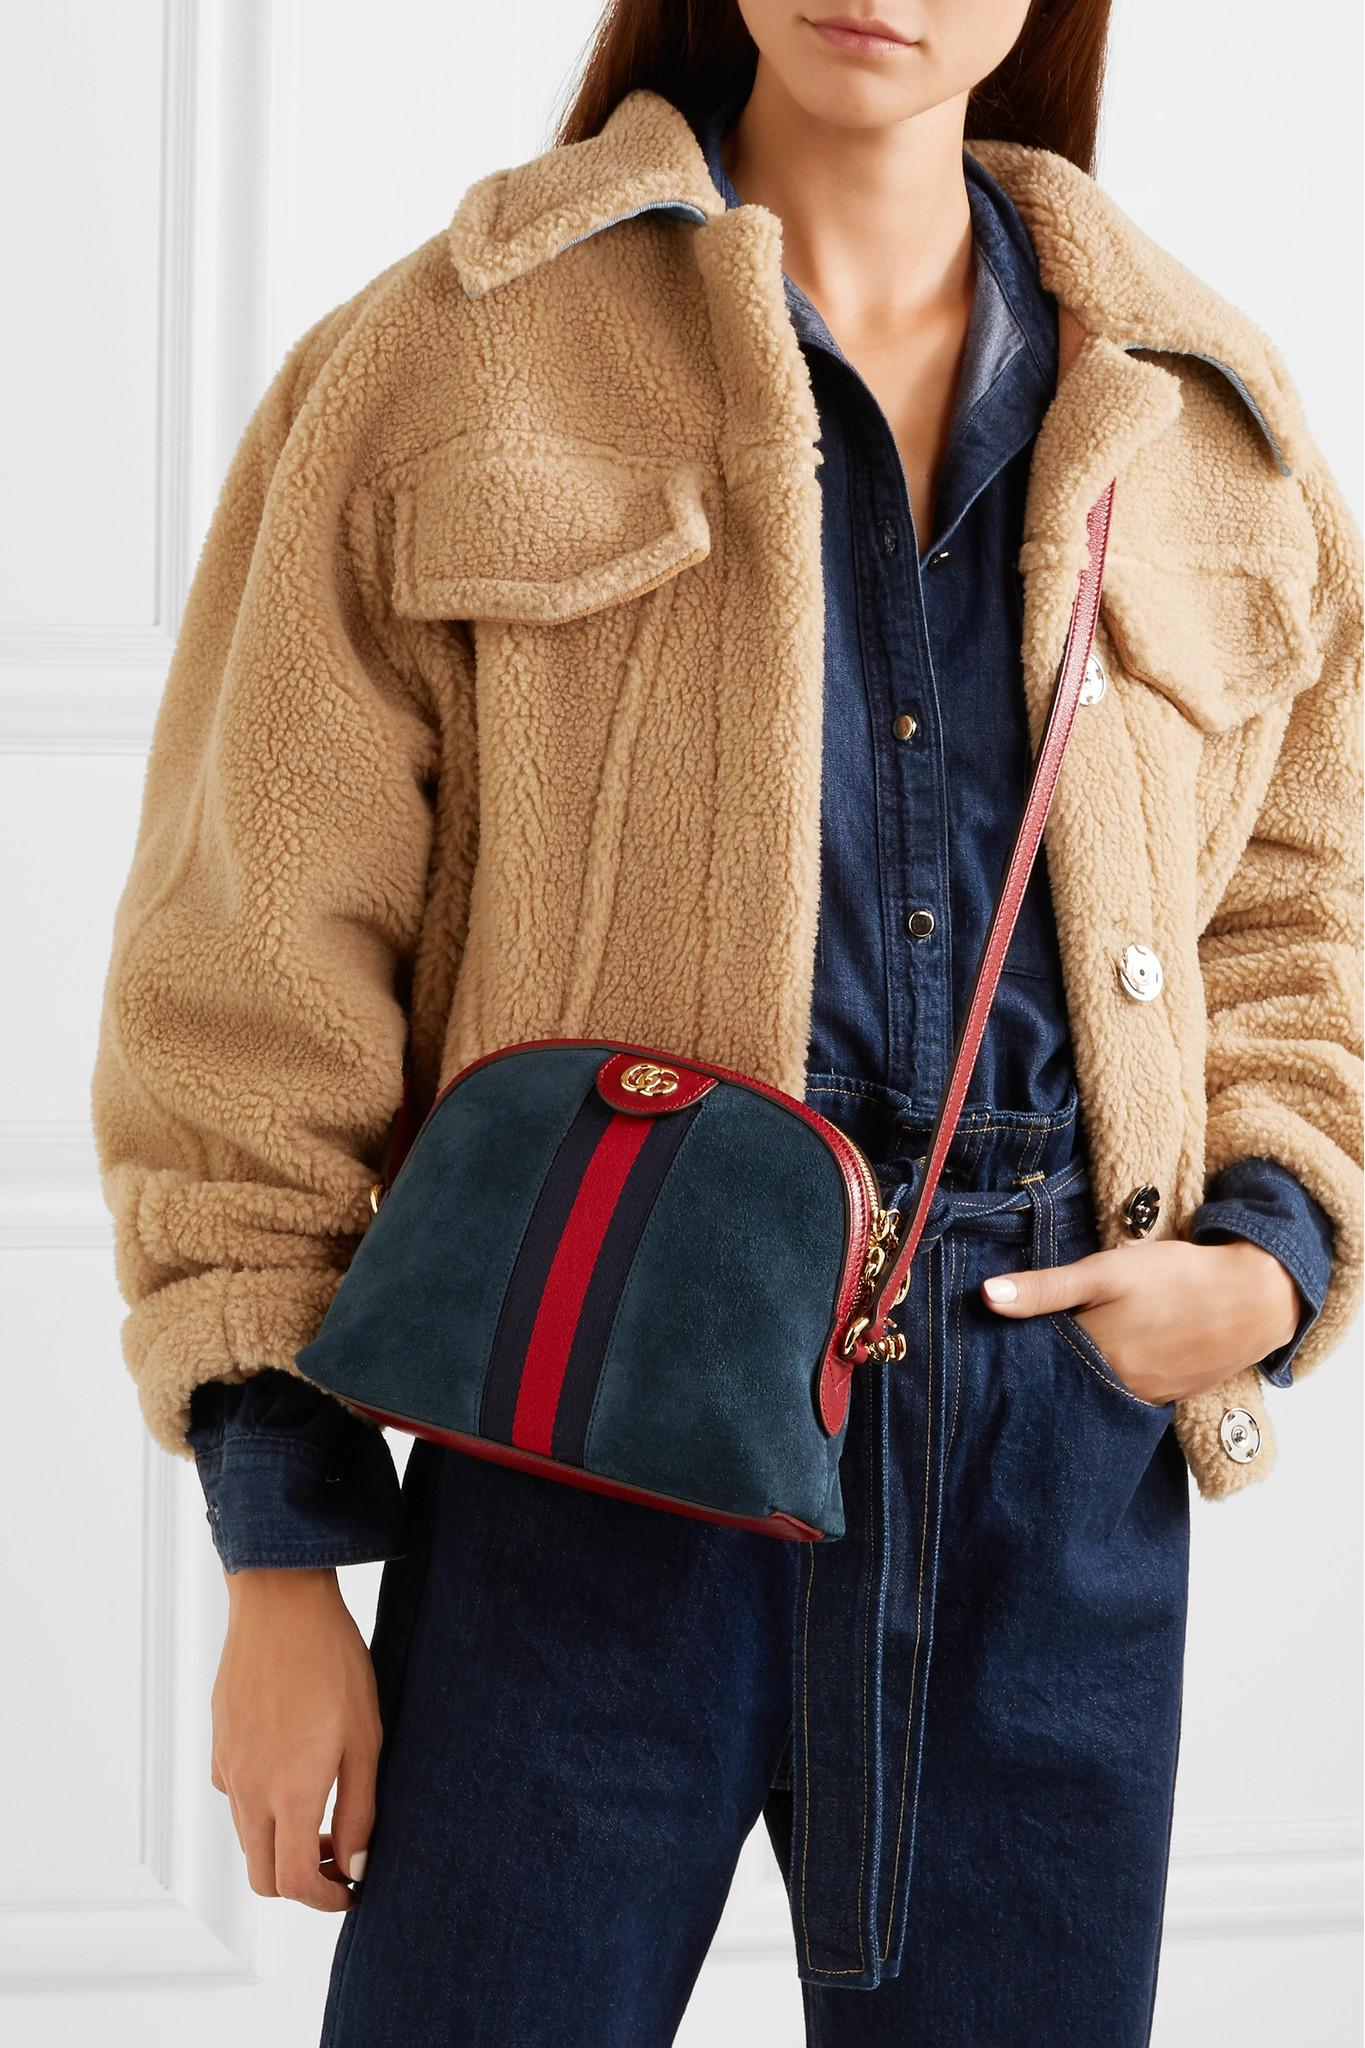 681c82512367 Gucci - Blue Ophidia Patent Leather-trimmed Suede Shoulder Bag - Lyst. View  fullscreen